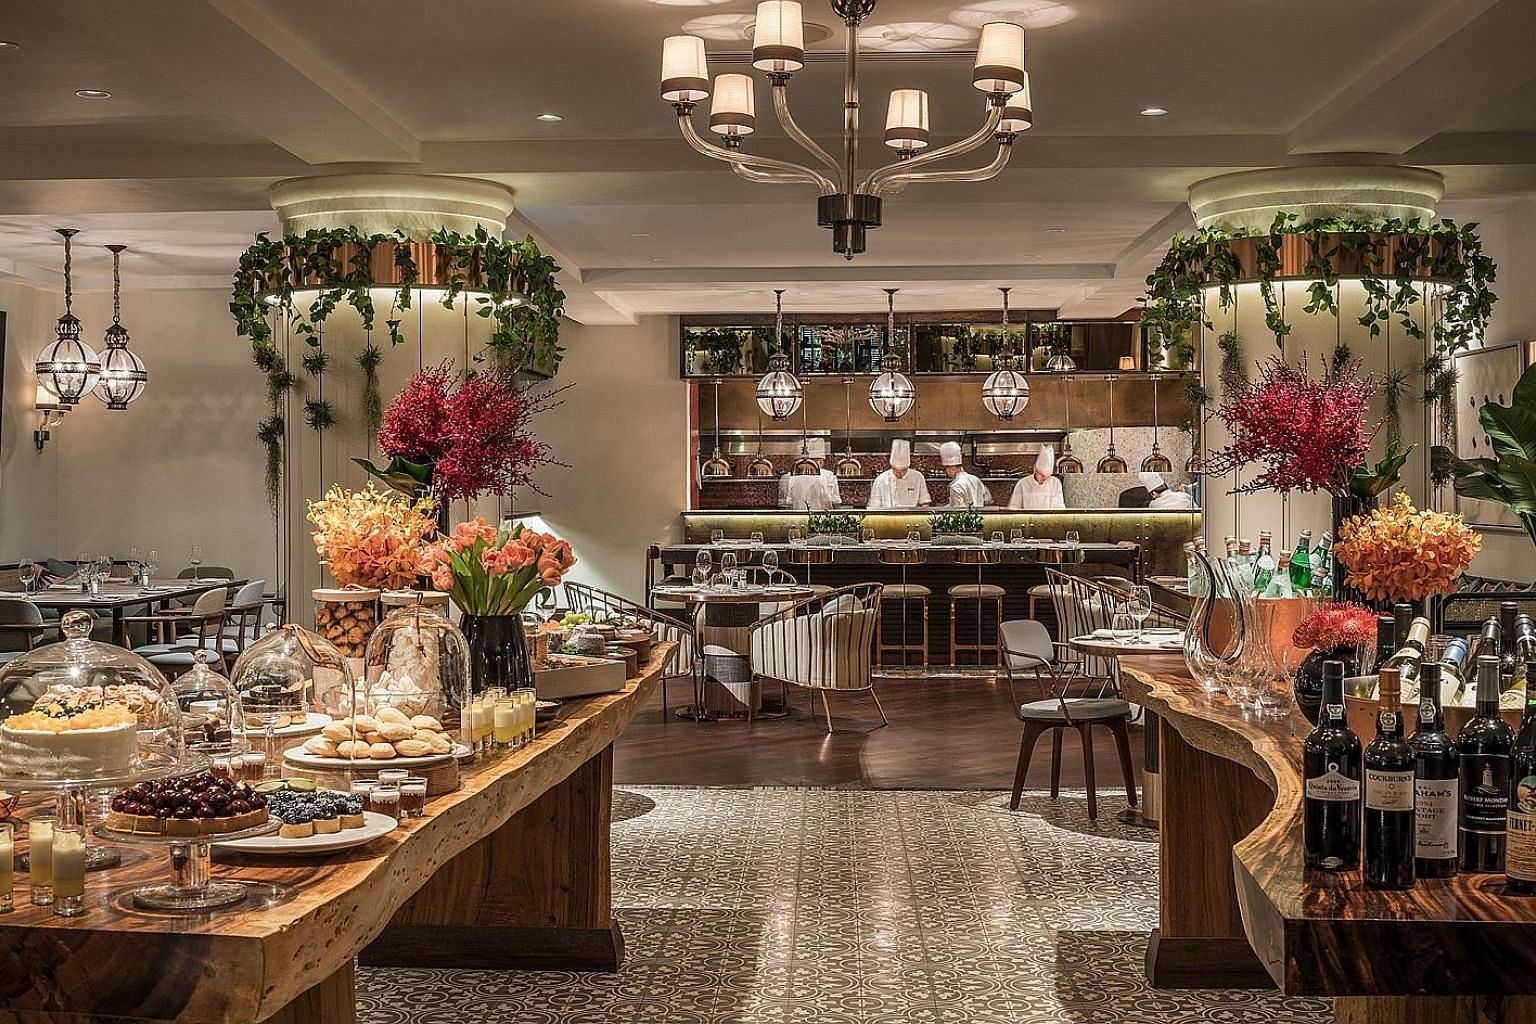 Modern Asian brasserie One-Ninety at Four Seasons Hotel Singapore. SPH subscribers can enjoy 15 per cent off the total bill at the restaurant, excluding alcohol beverages.